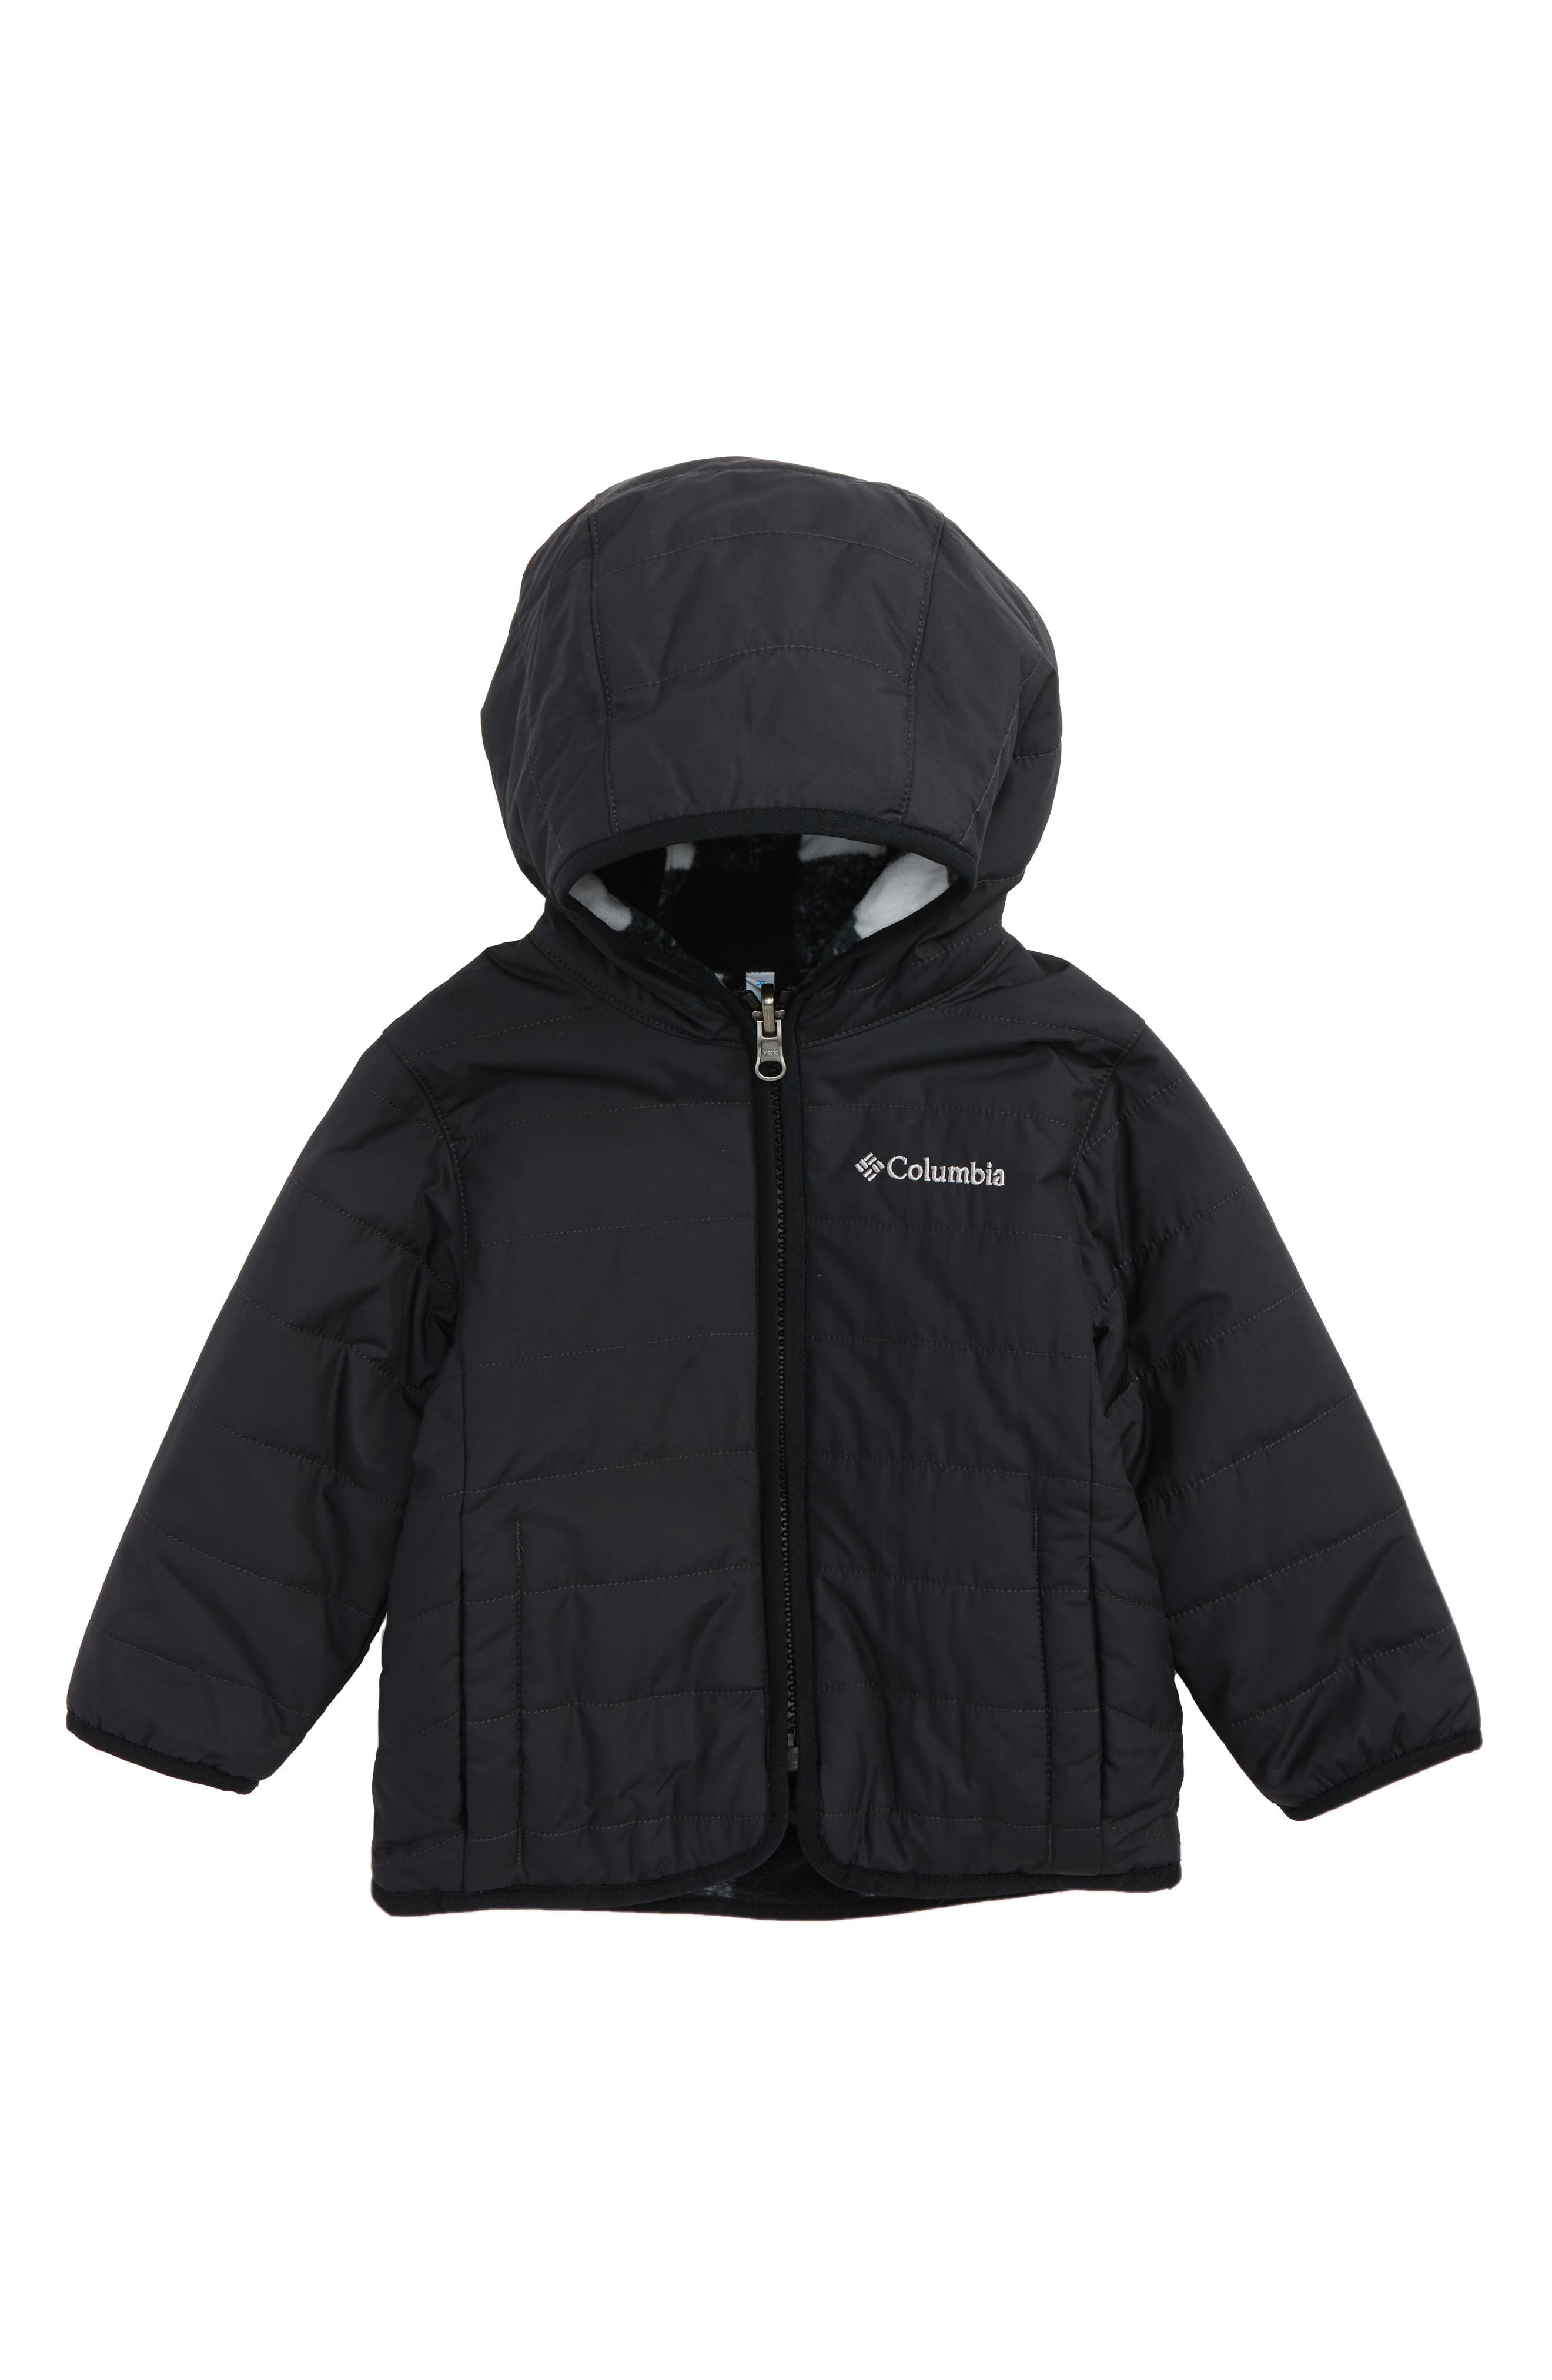 Alternate Image 1 Selected - Columbia Double Trouble Omni-Shield Reversible Water-Resistant Hooded Jacket (Baby Boys)